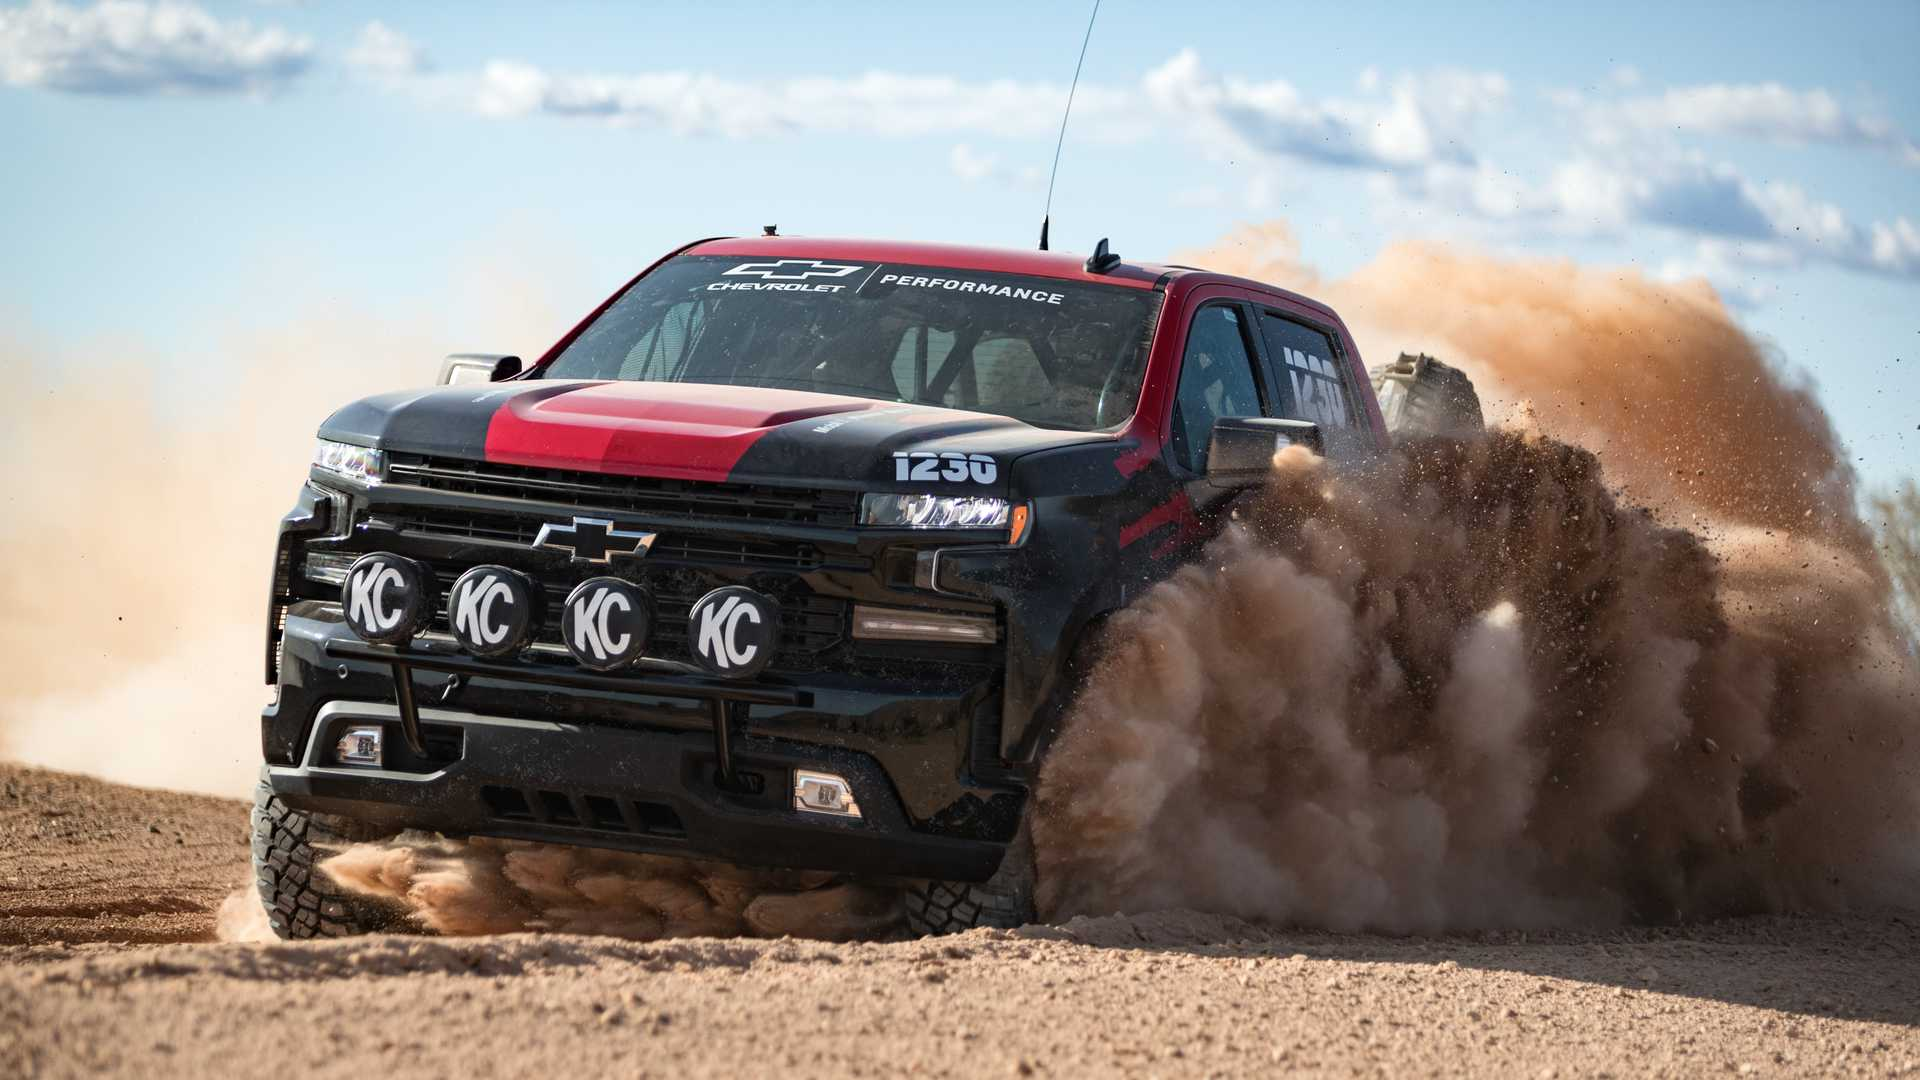 Off Road Ready Chevy Silverado Could Preview Hot Zr2 Version